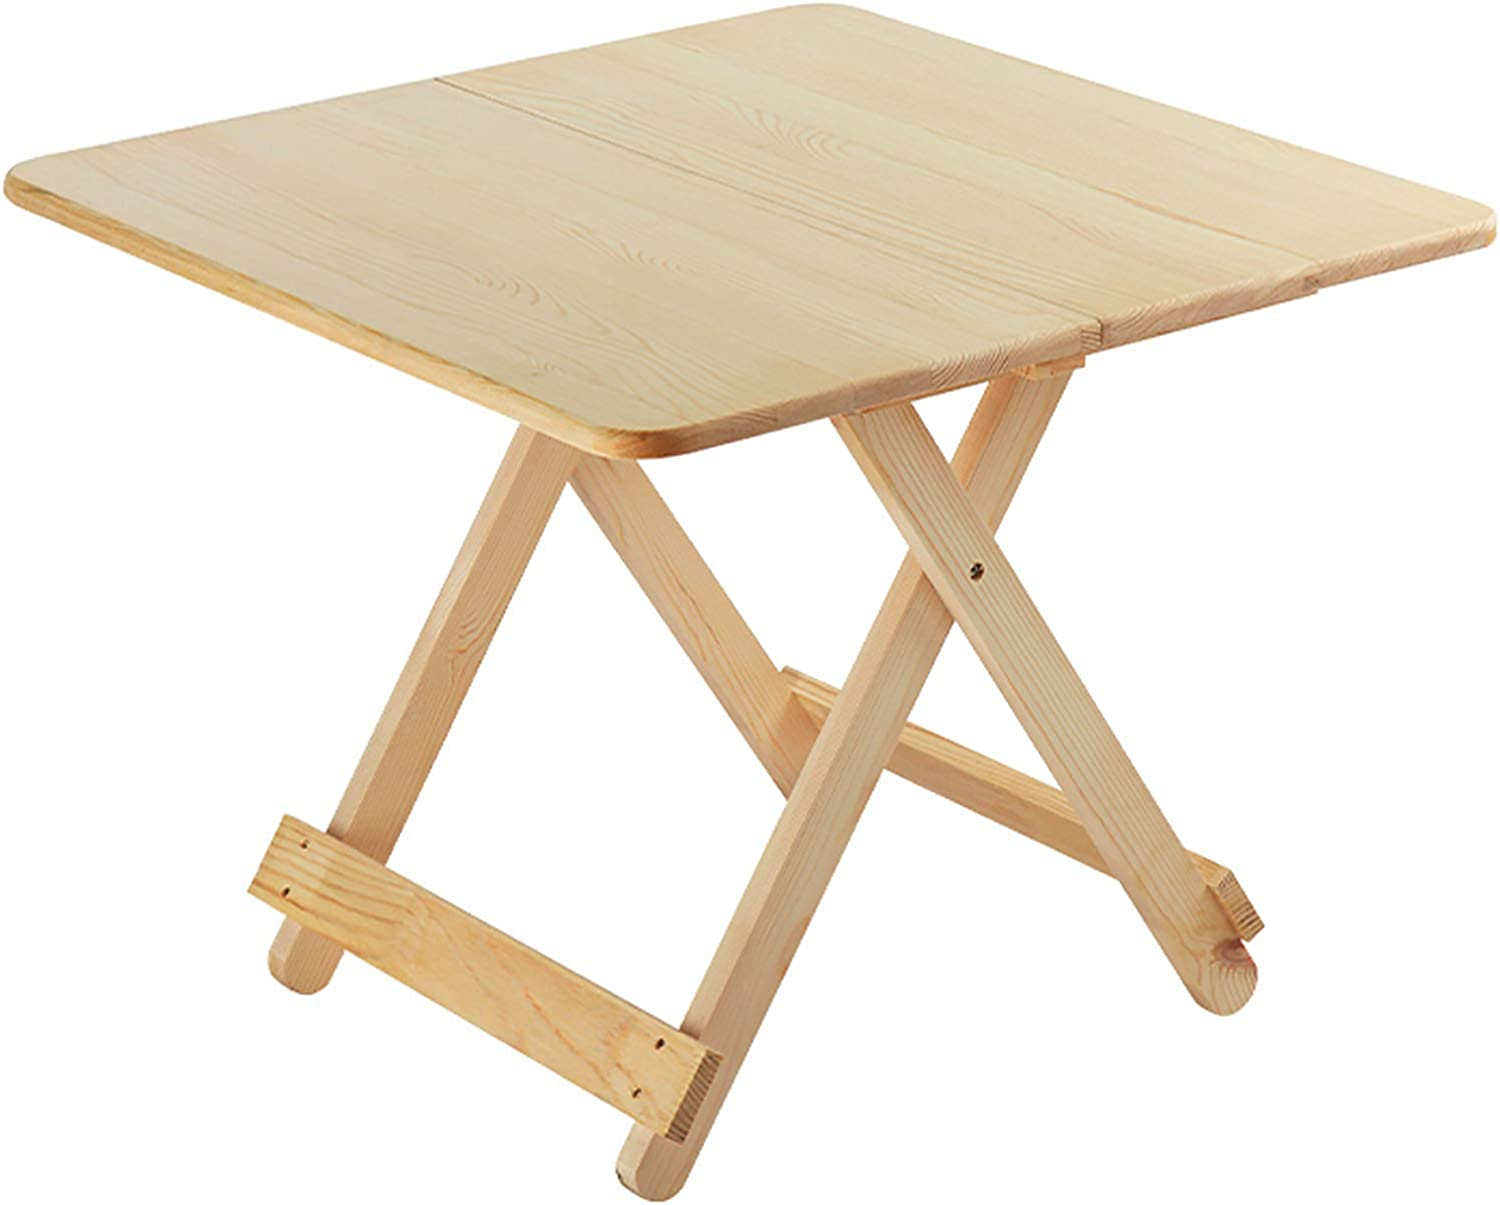 qazxsw Folding Table Ranking integrated 1st place Square Outdoor National uniform free shipping Small Wooden Di Garden